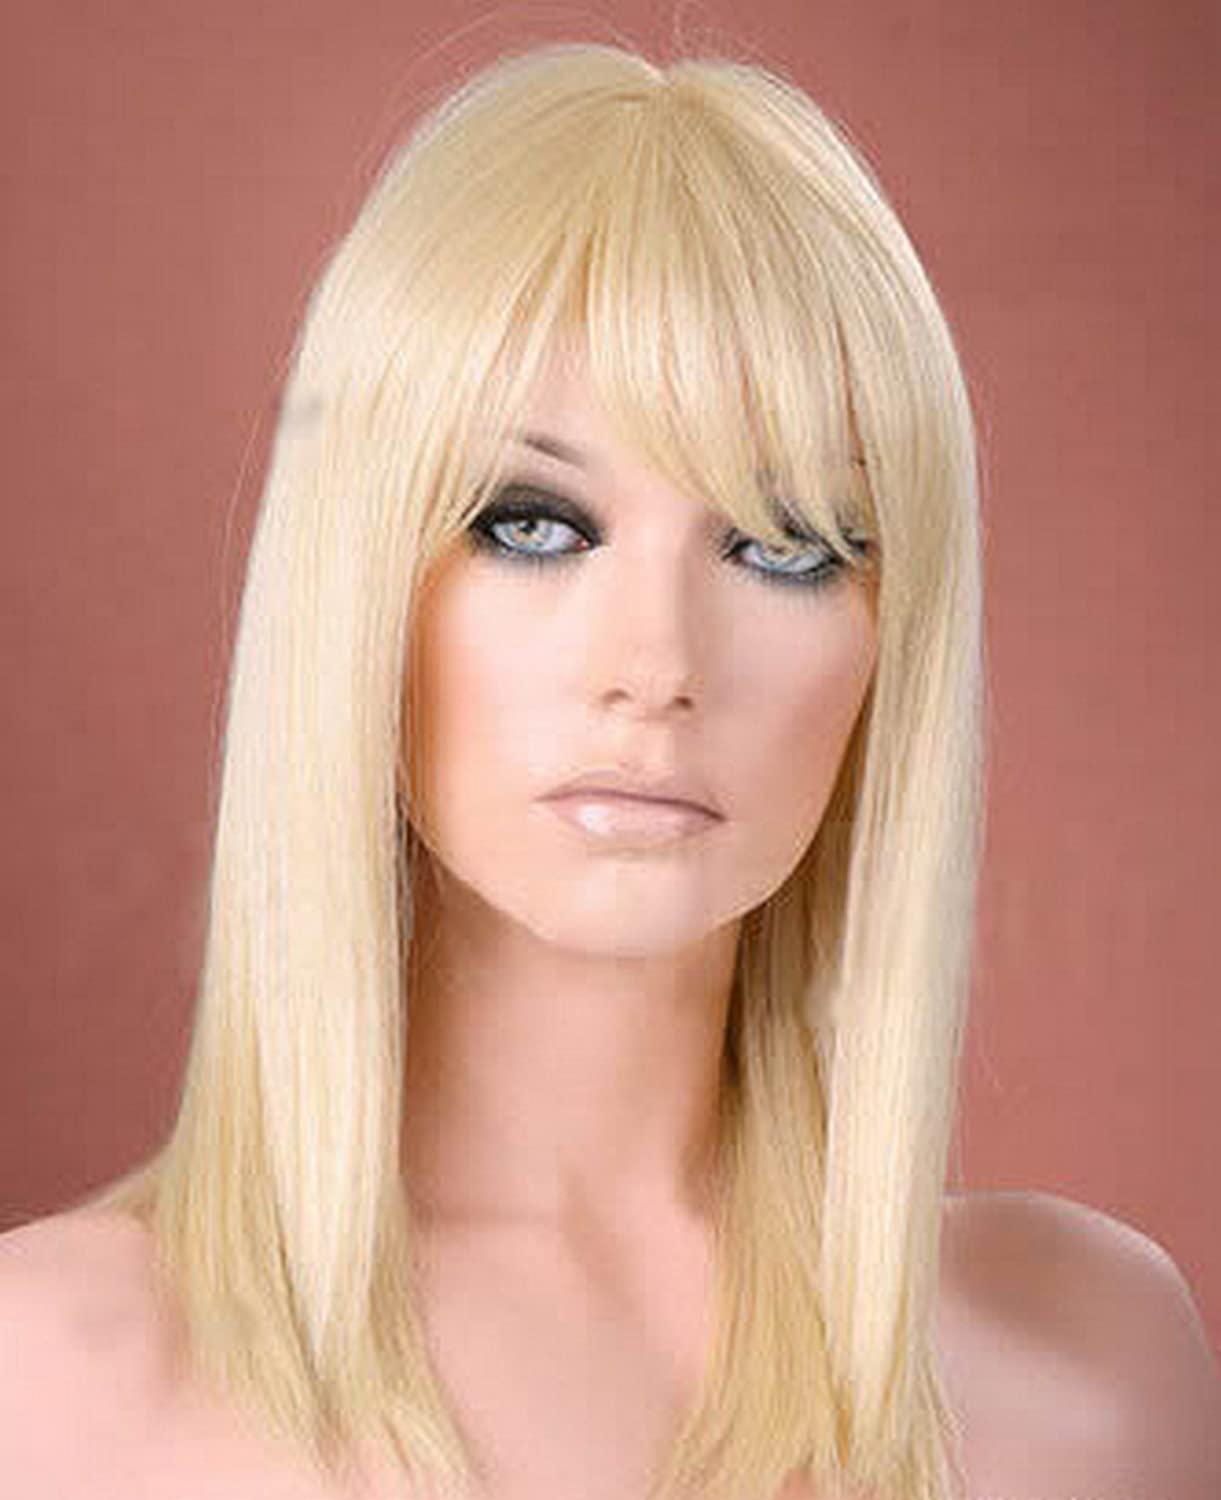 Forever Young Ladies Long Straight Side Bangs Fringe Light Blonde Fashion Wig by Forever Young